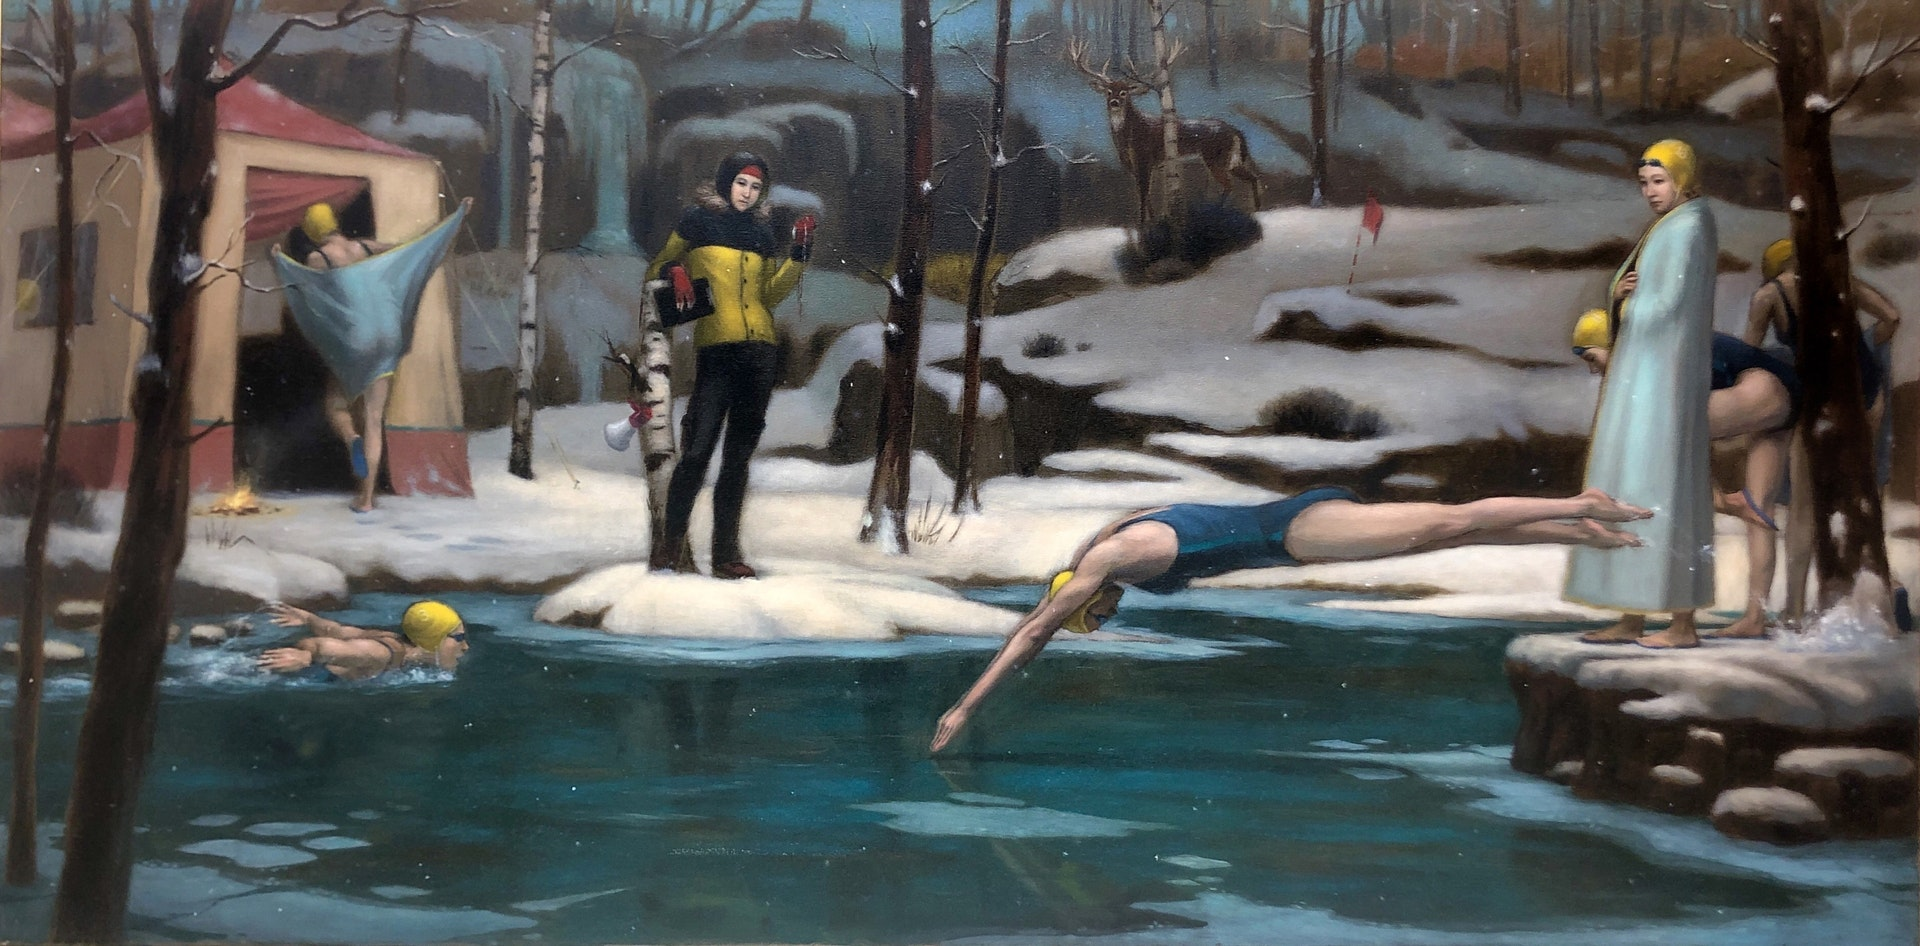 'Snowy Pond', Phillip Kim Ho Hui, Oil on canvas, 60 x 120 cm